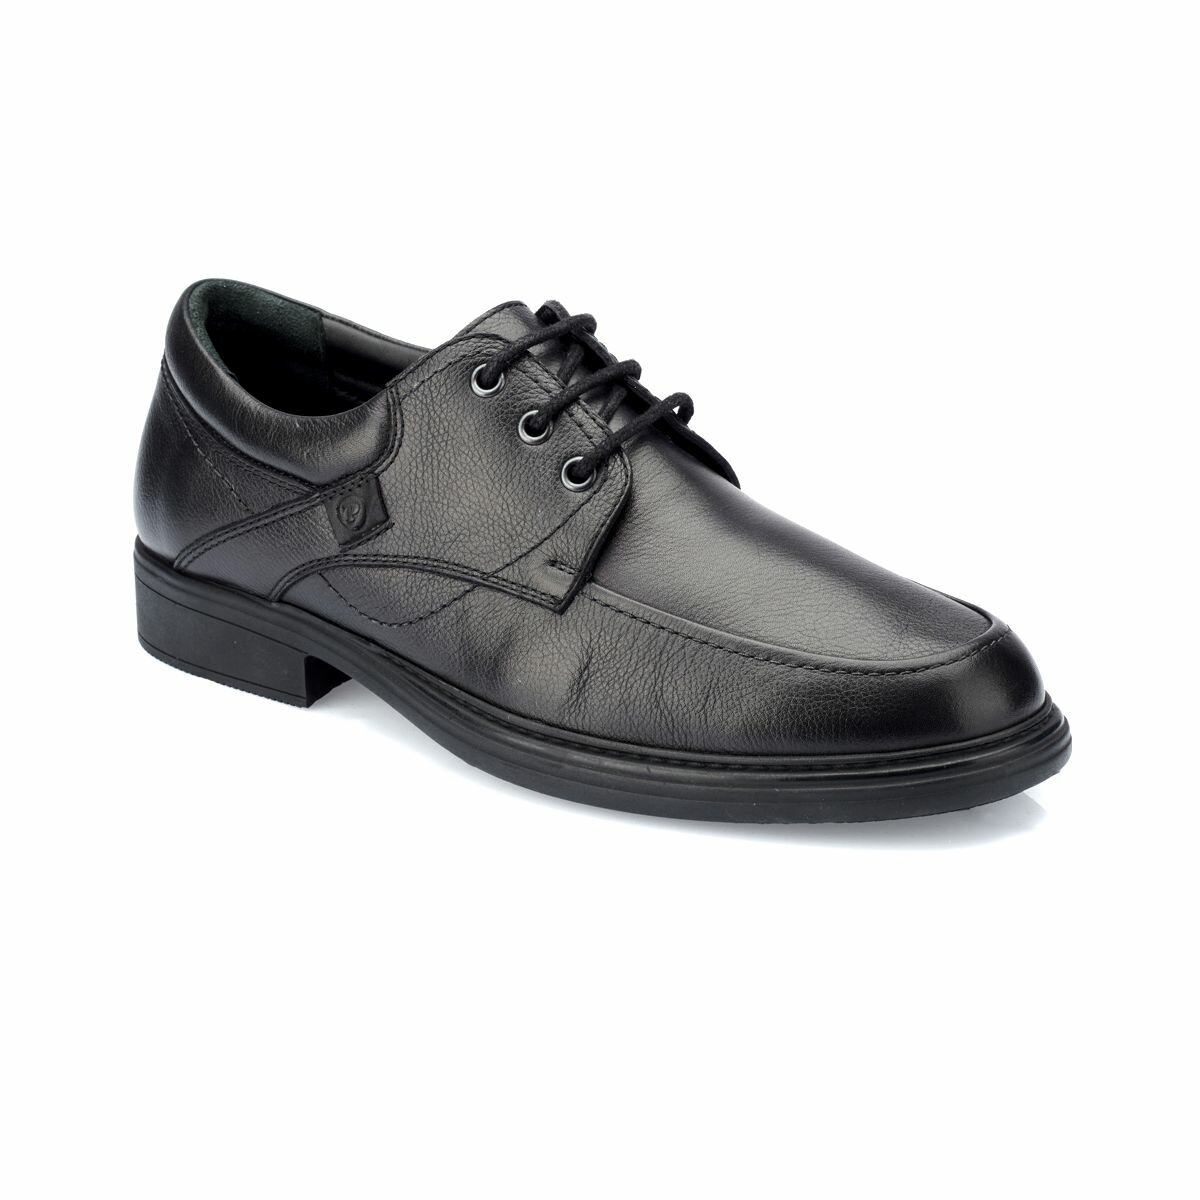 FLO 82.100410.M Black Male Shoes Polaris 5 Point